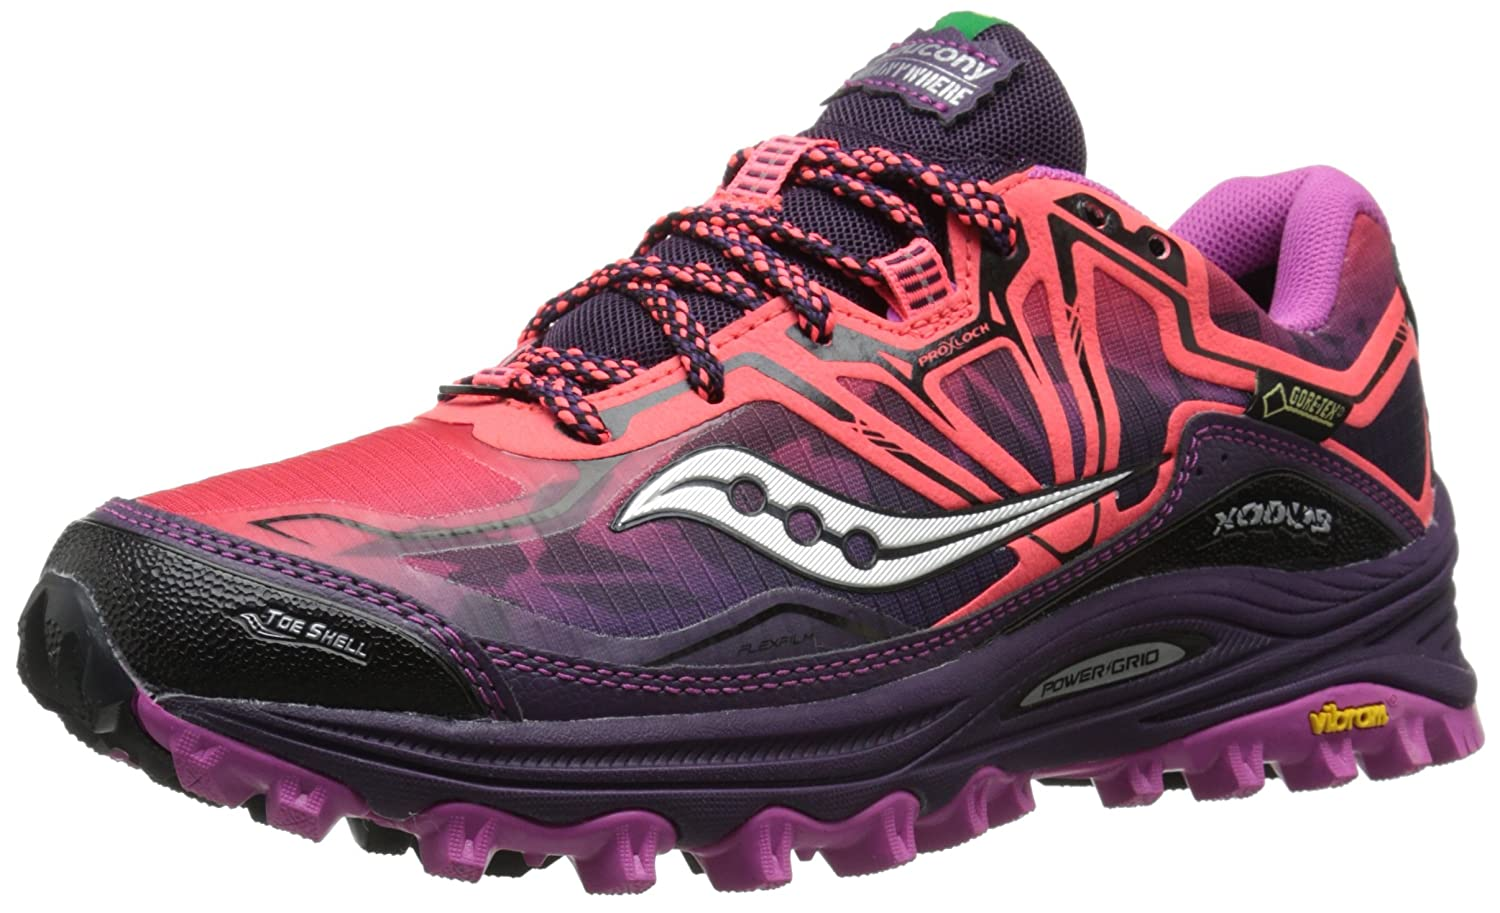 Saucony Women's Xodus 6.0 GTX Trail Running Shoe B00PJ8UW06 9.5 B(M) US|Coral/Purple